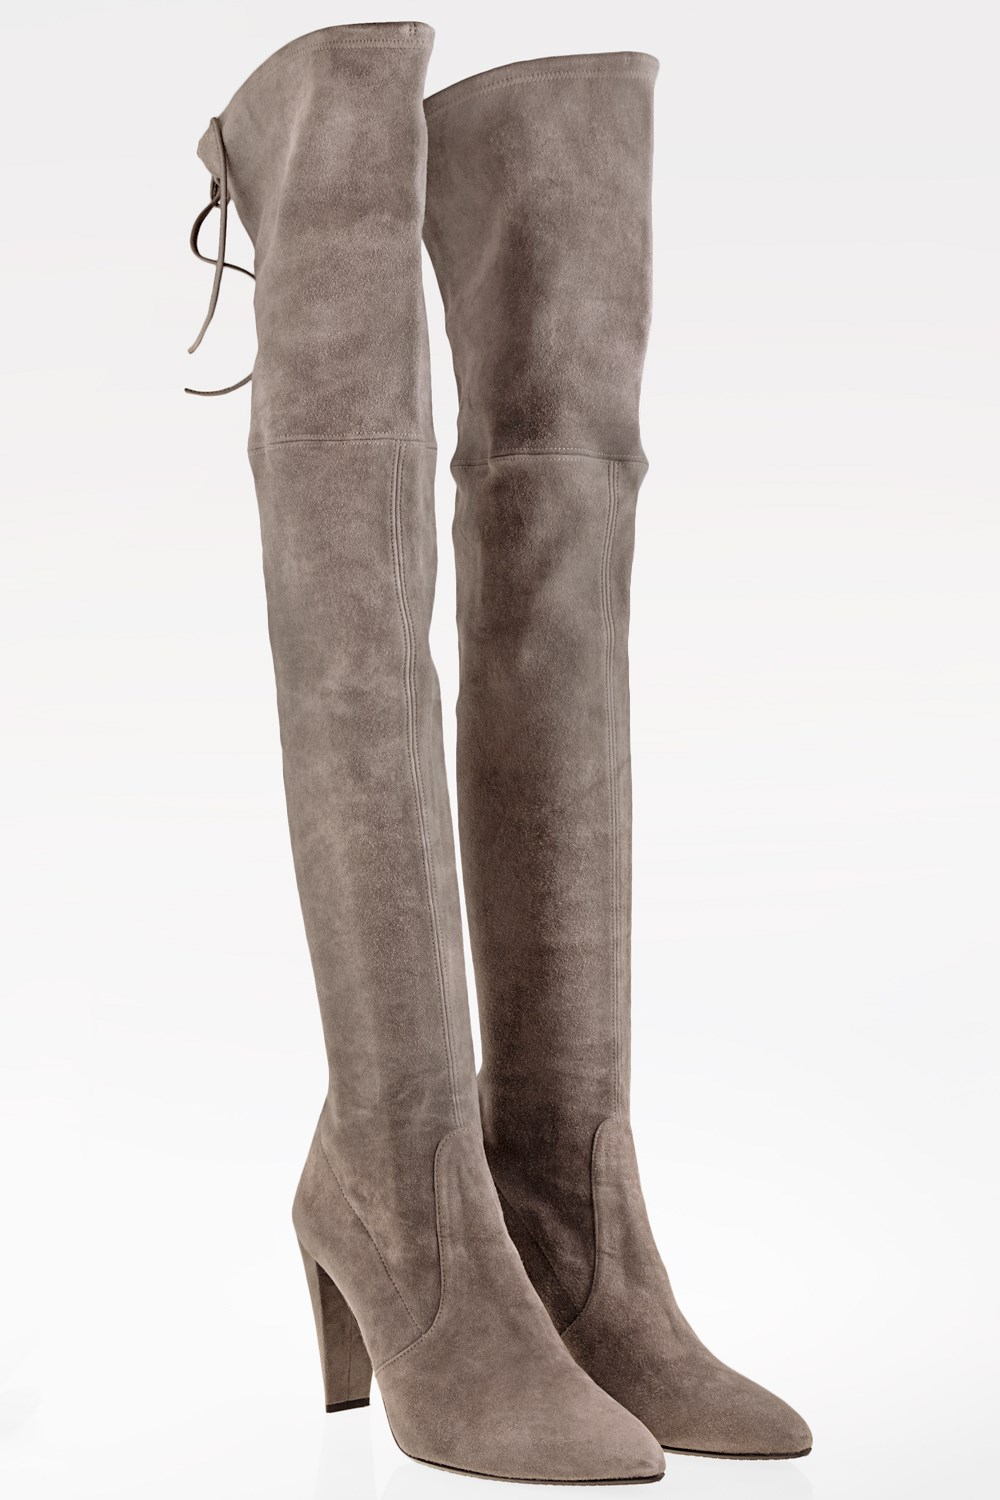 Topo Gray Stone Over-The-Knee Suede